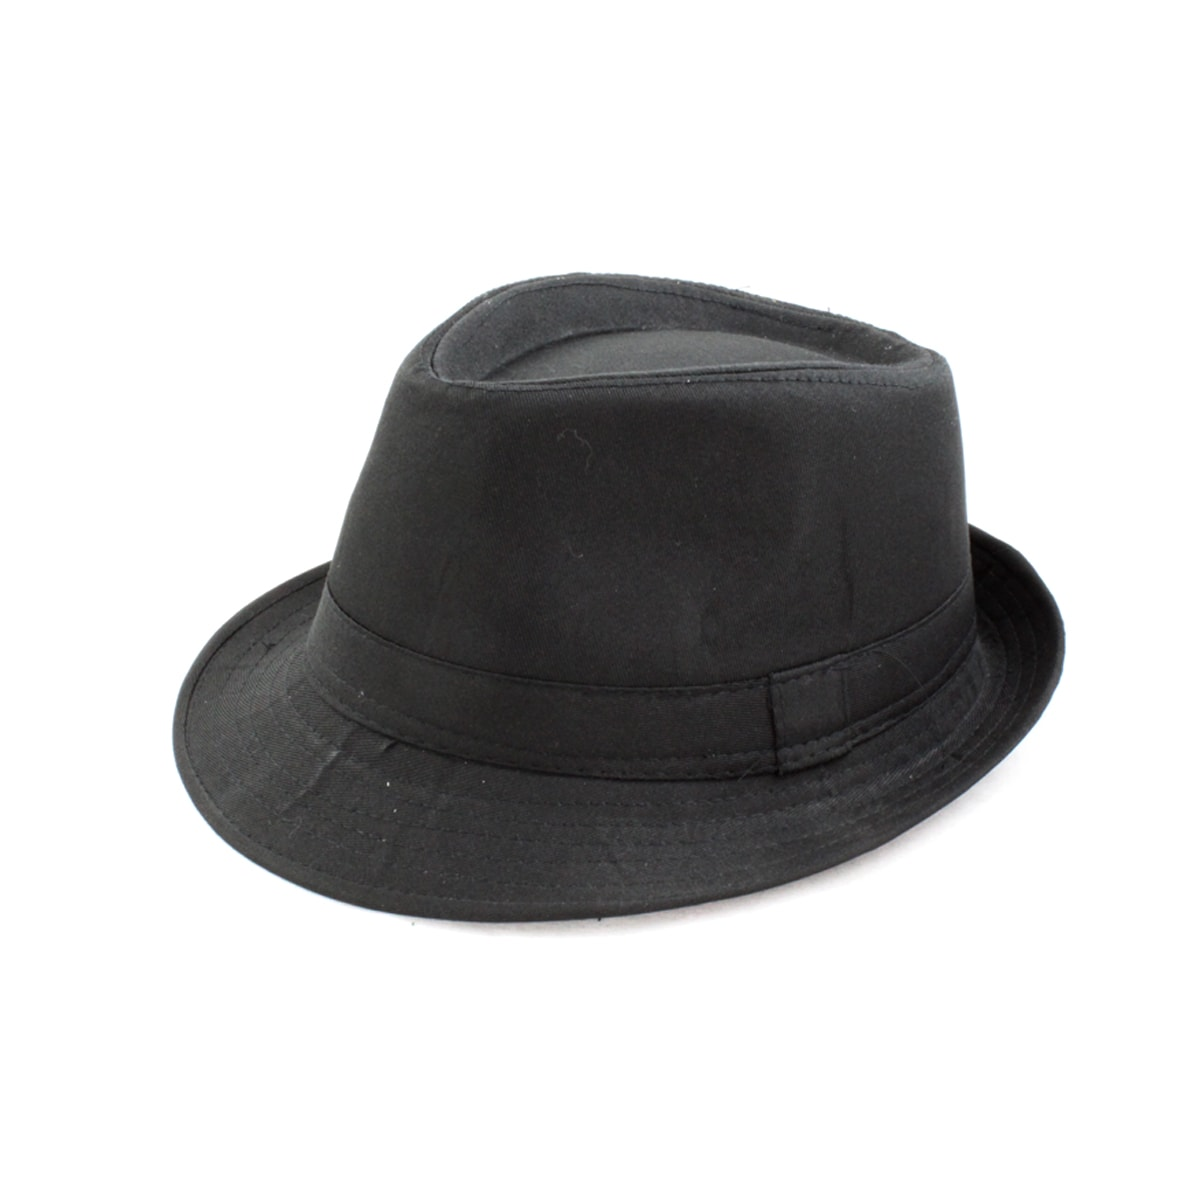 Faddism One-size-fits-most Banded-detail Black Flax Fedora Hat